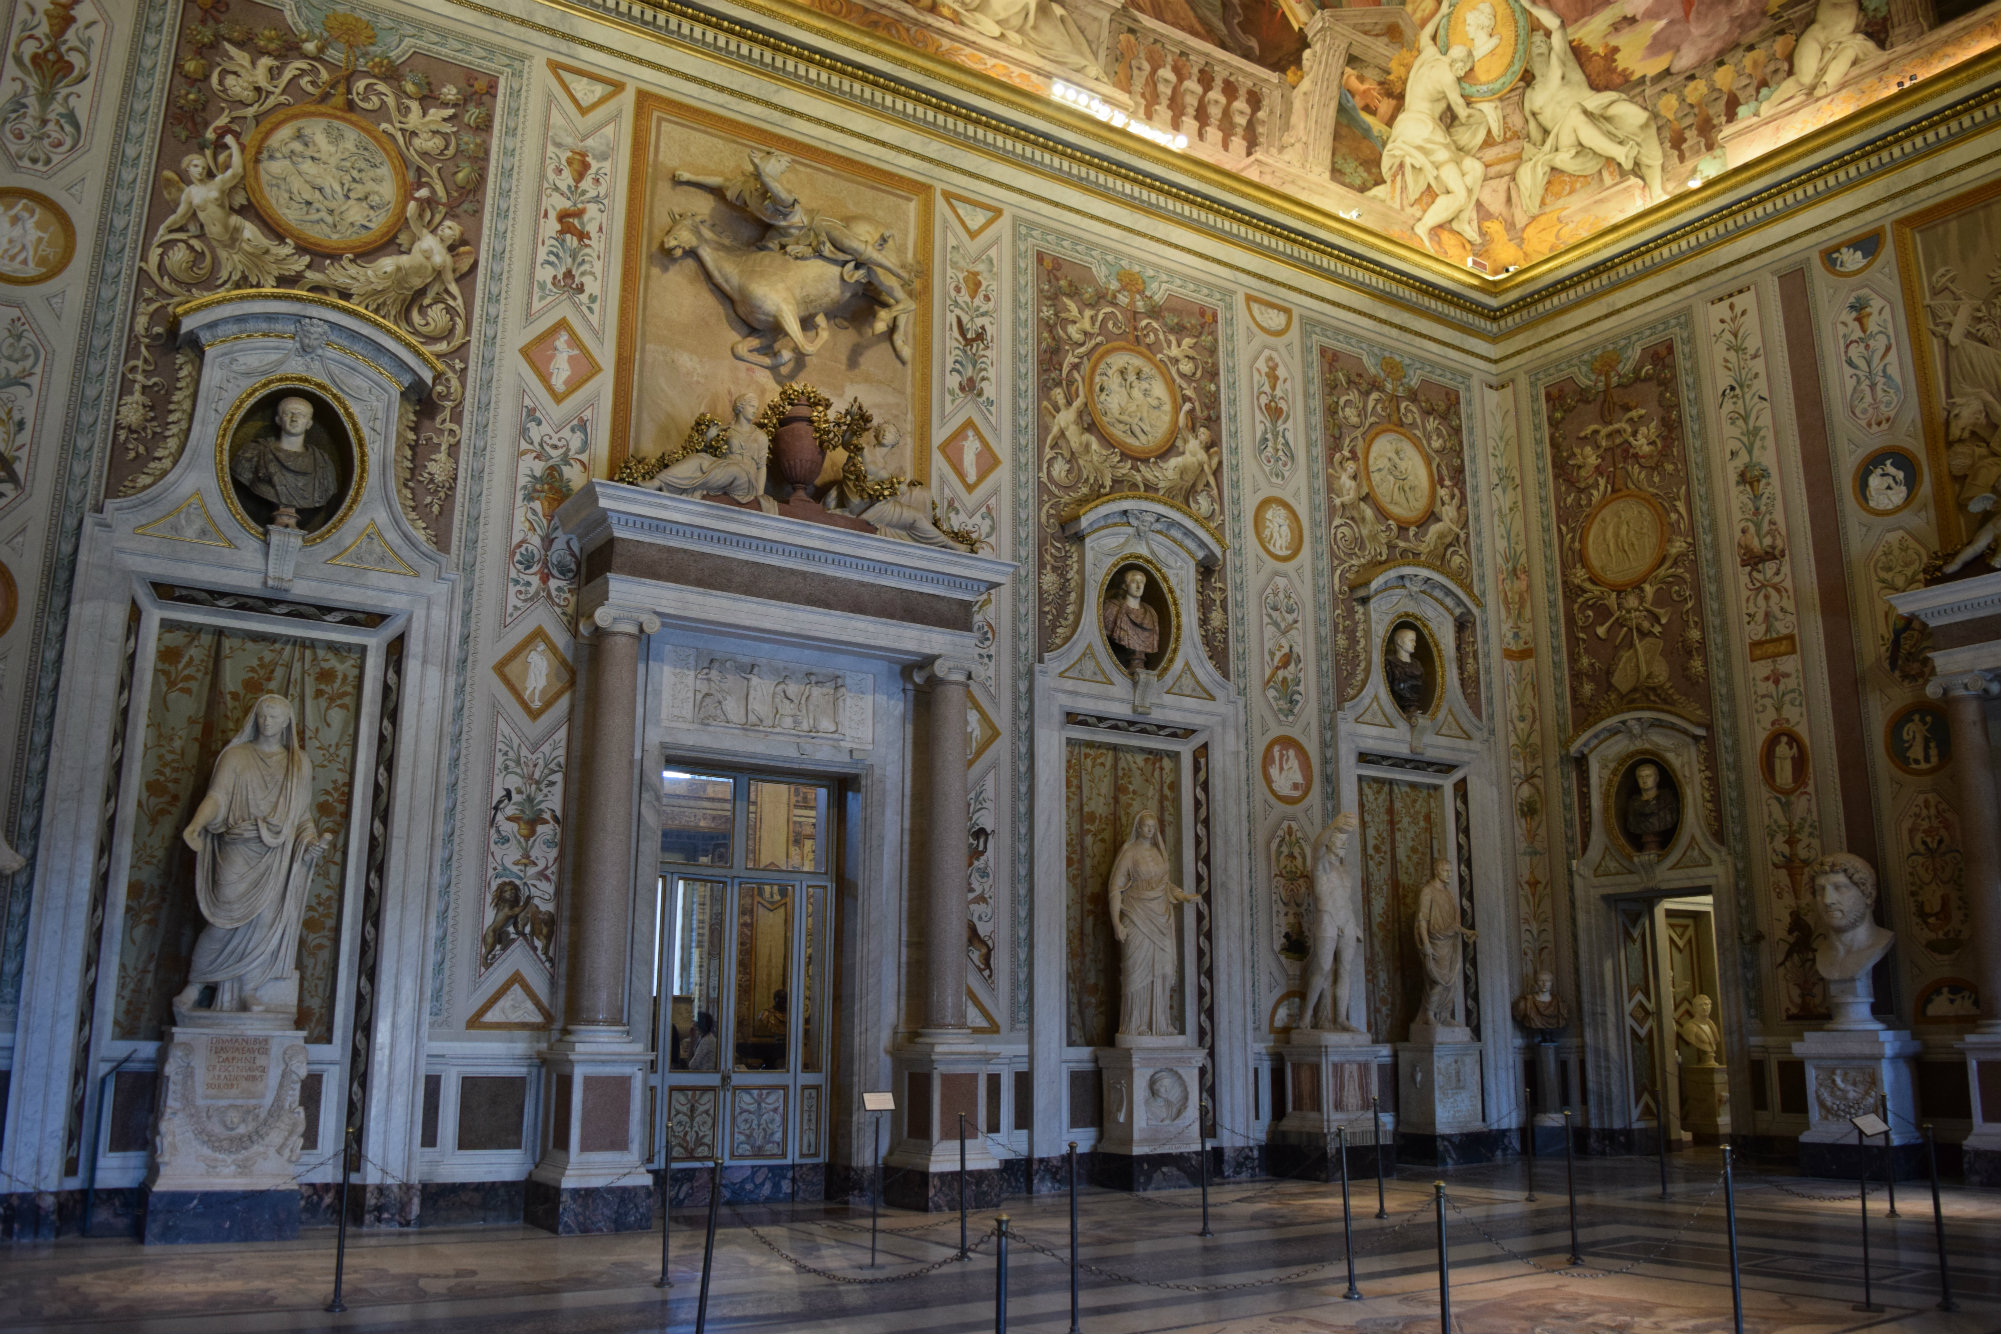 Art & Architecture Site Visit to the Galleria Borghese